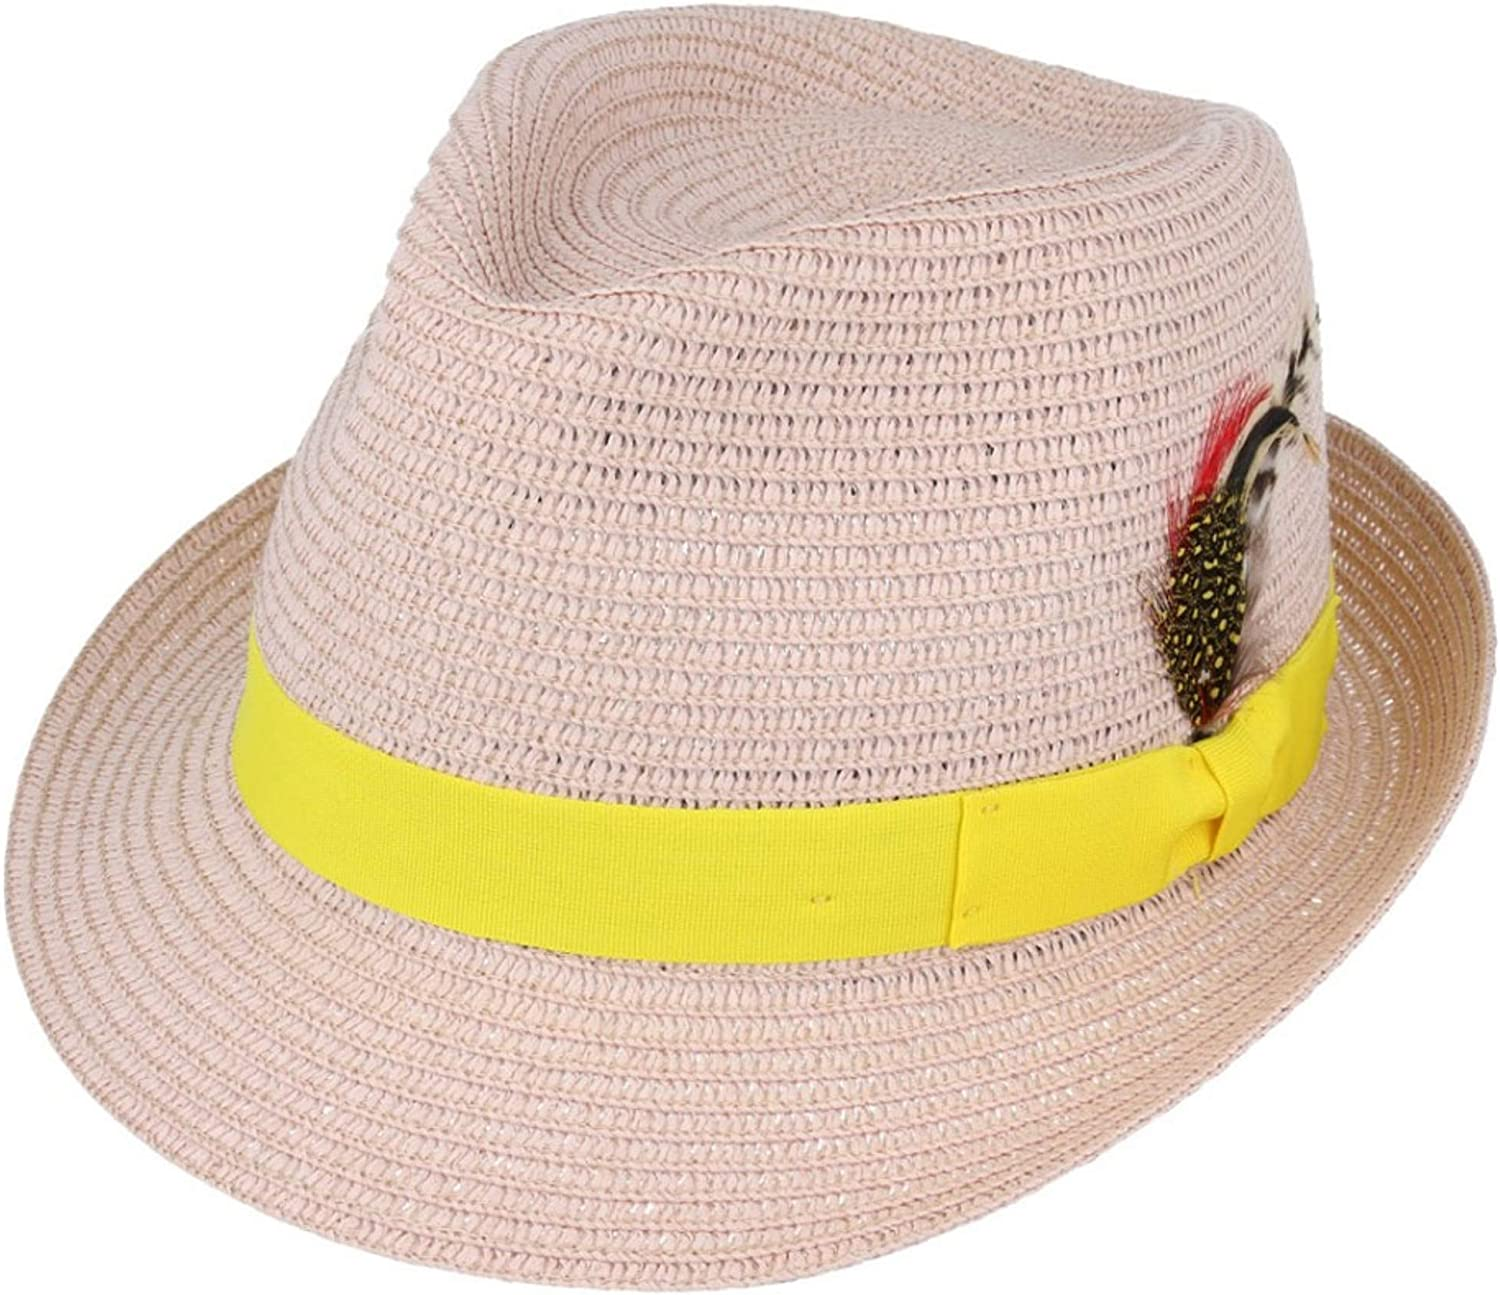 MAZ Paper Straw Crushable Summer Beach Trilby Hat with Band and Adjustable Sweatband